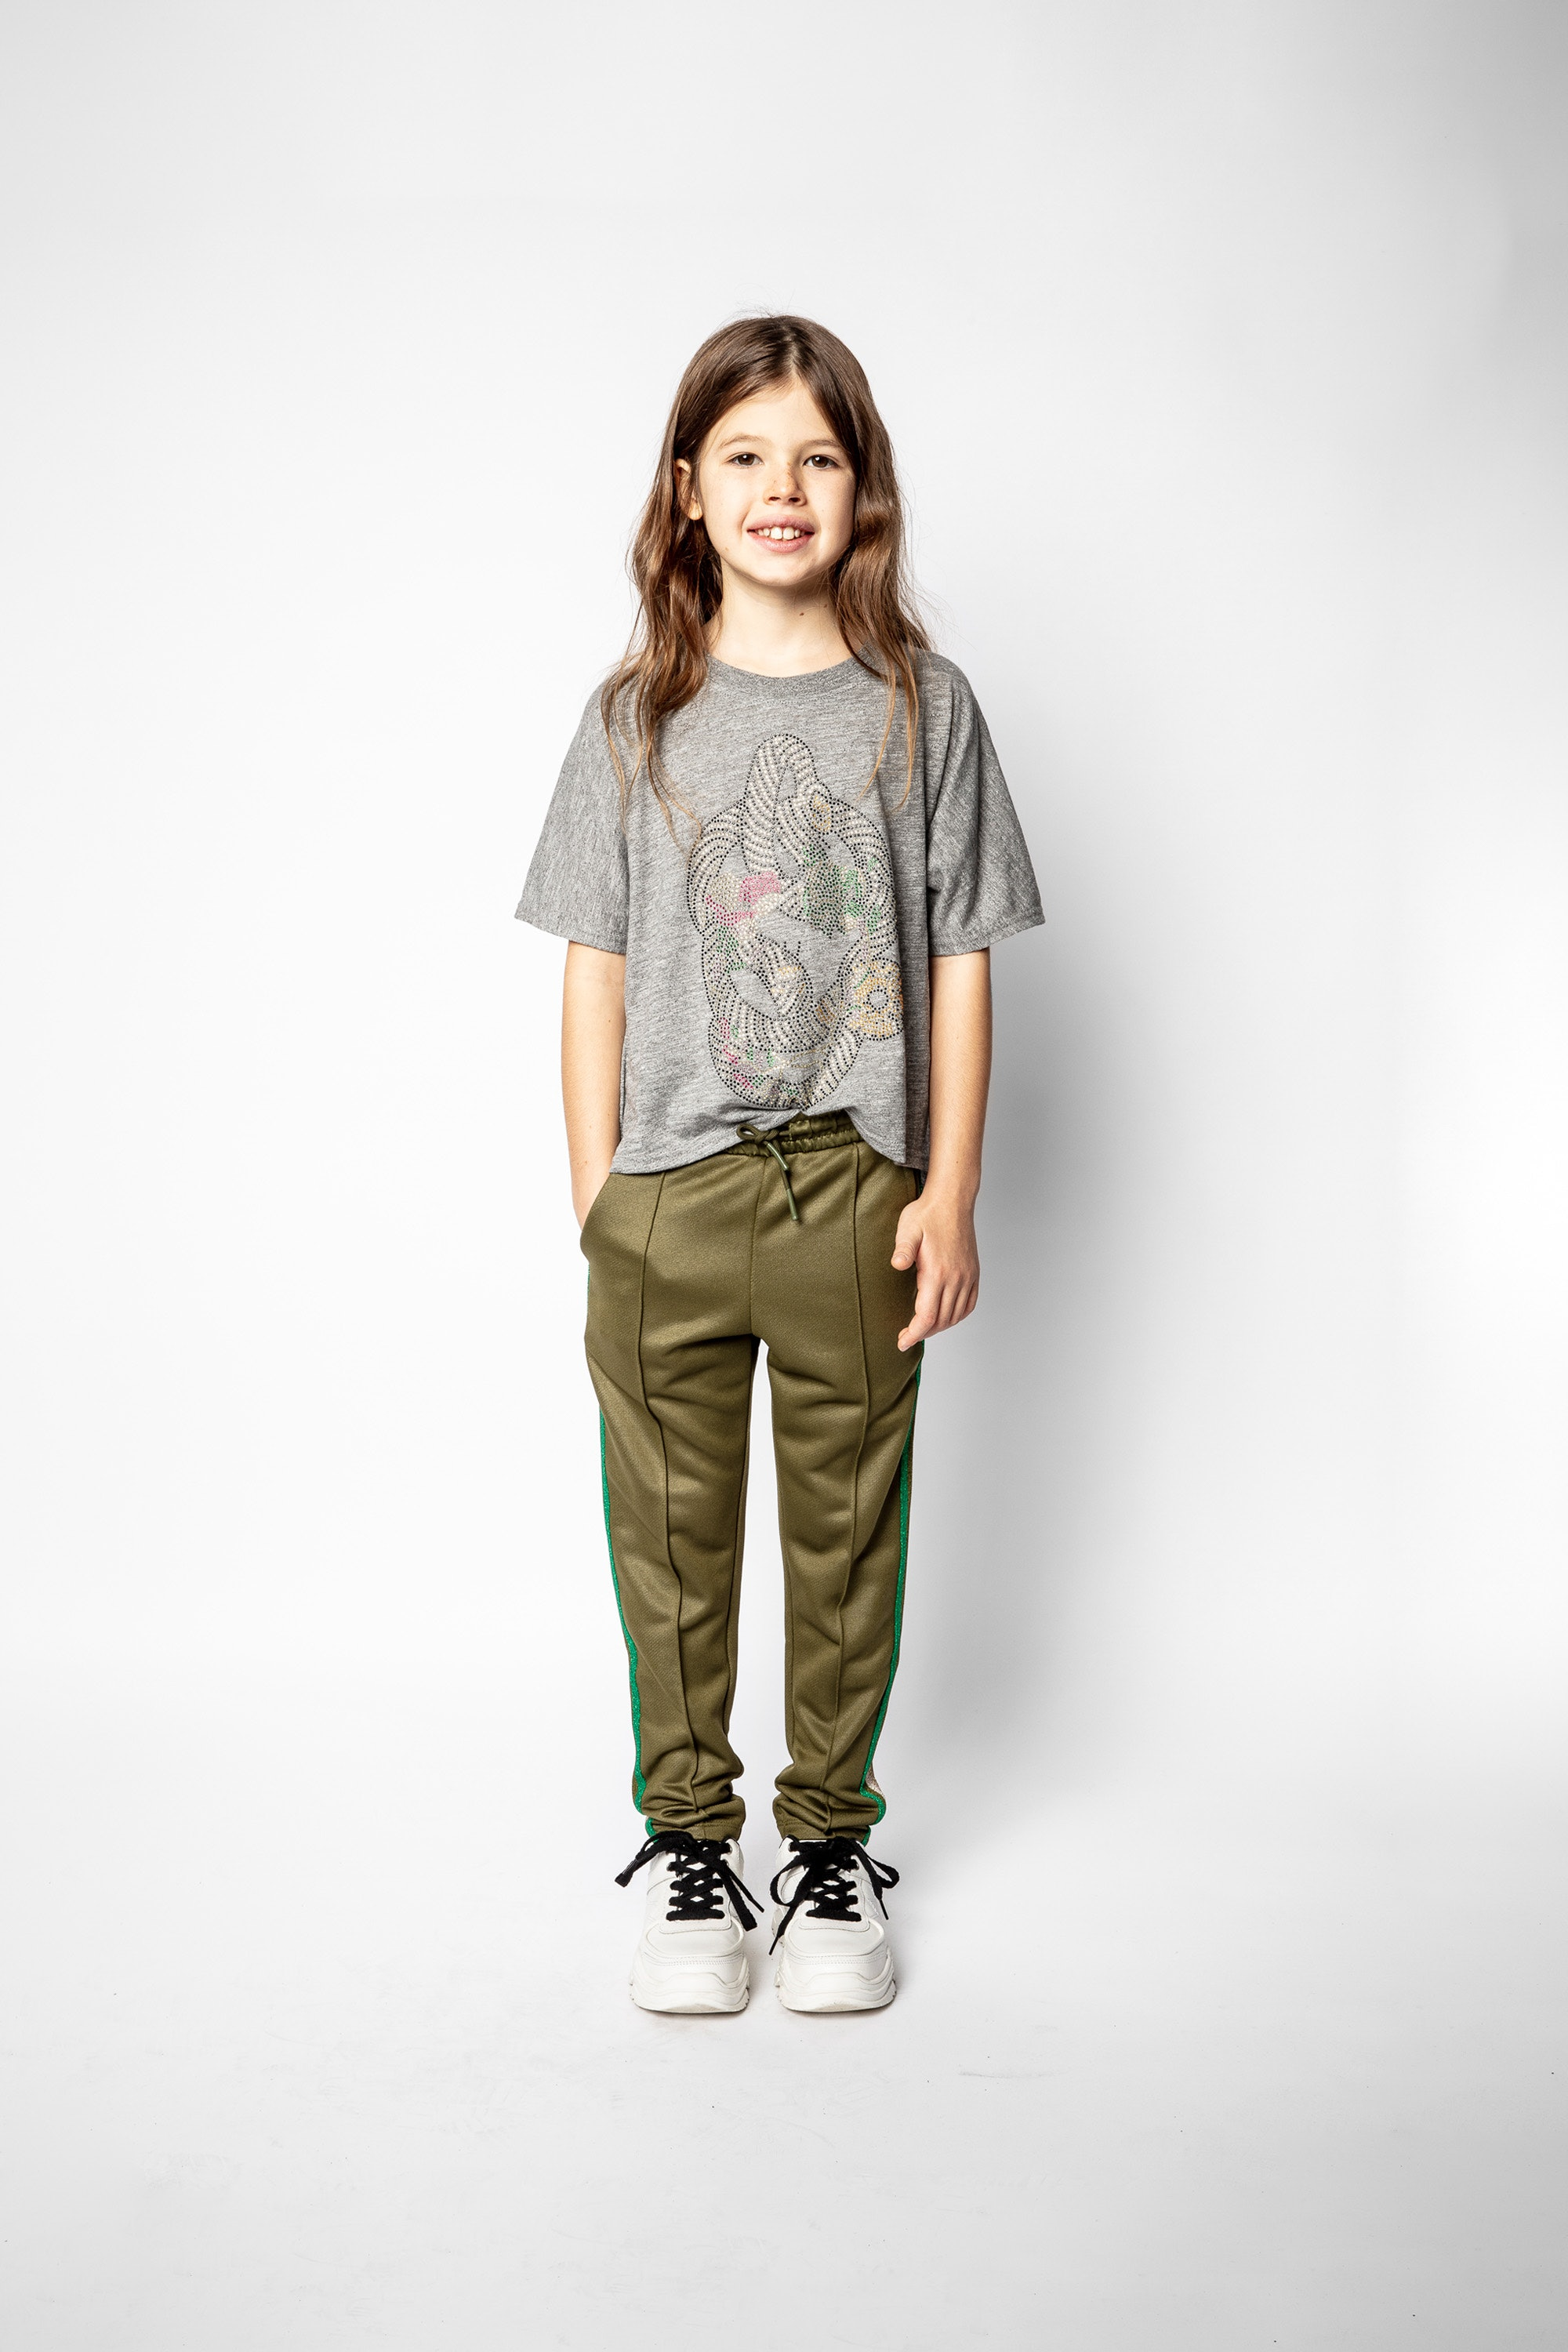 Child's Poeme pants